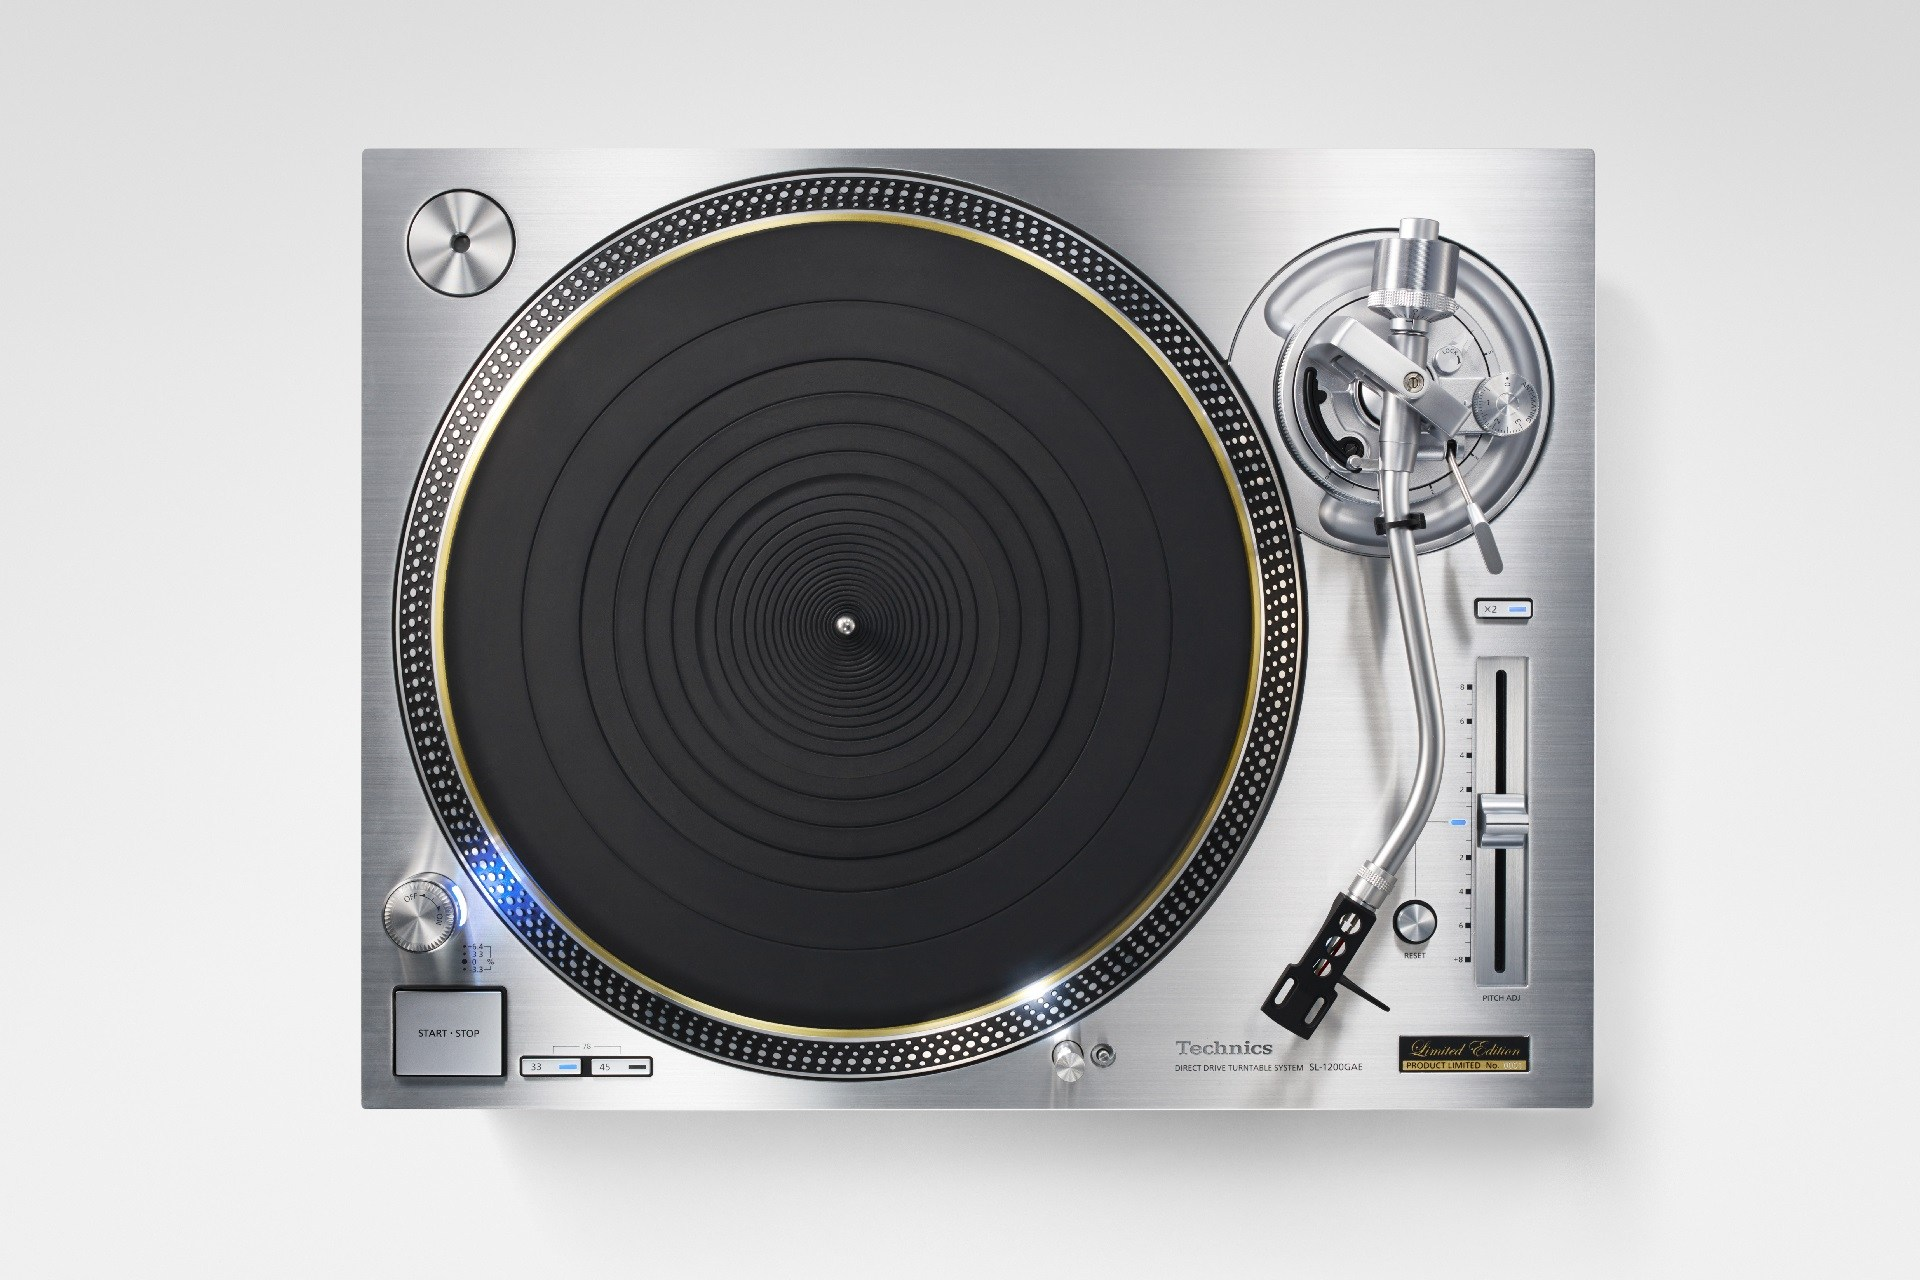 High End: Technics SL 1200-GAE